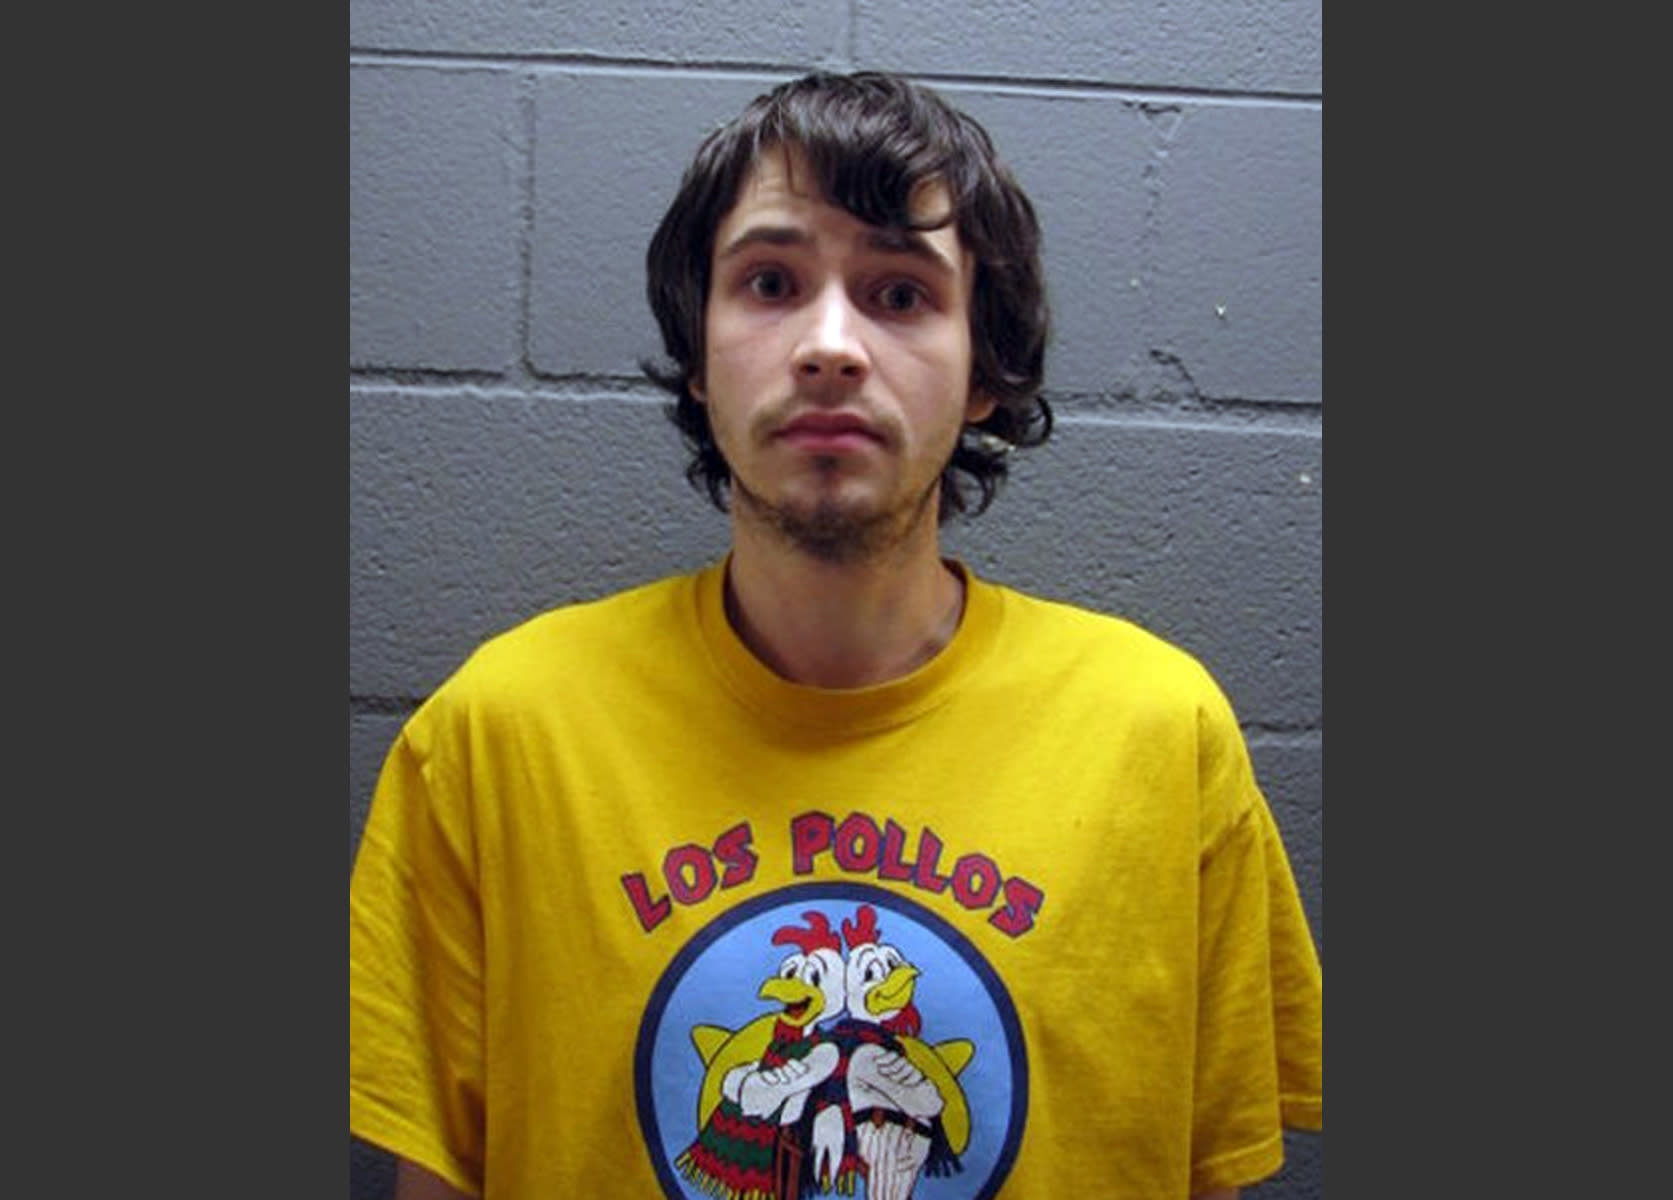 """In this undated booking photo provided by the Cook County Sheriff's Office, Daniel Kowalski, a suburban Chicago man accused of operating a methamphetamine lab, wears a t-shirt for the fictional Los Pollos Hermanos chicken restaurant depicted in """"Breaking Bad,"""" a show about a methamphetamine manufacturer. Kowalski, 21, is charged with felony possession of a controlled substance, methamphetamine manufacturing materials and precursors. (AP Photo/Cook County Sheriff's Office)"""